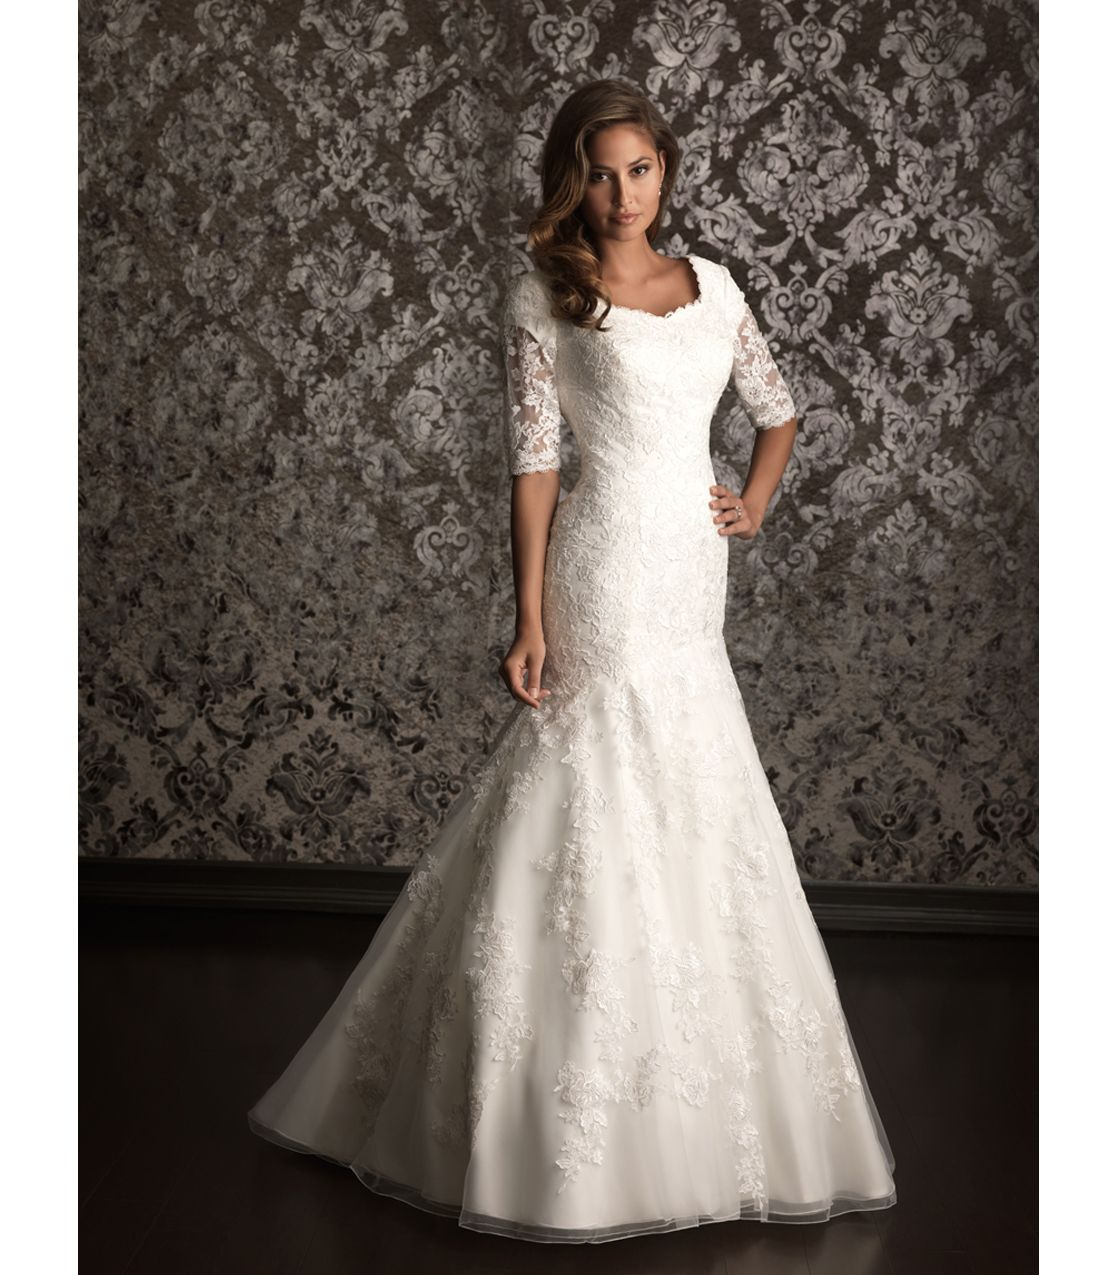 Allure Modest Wedding Gowns: White Lace Applique Three